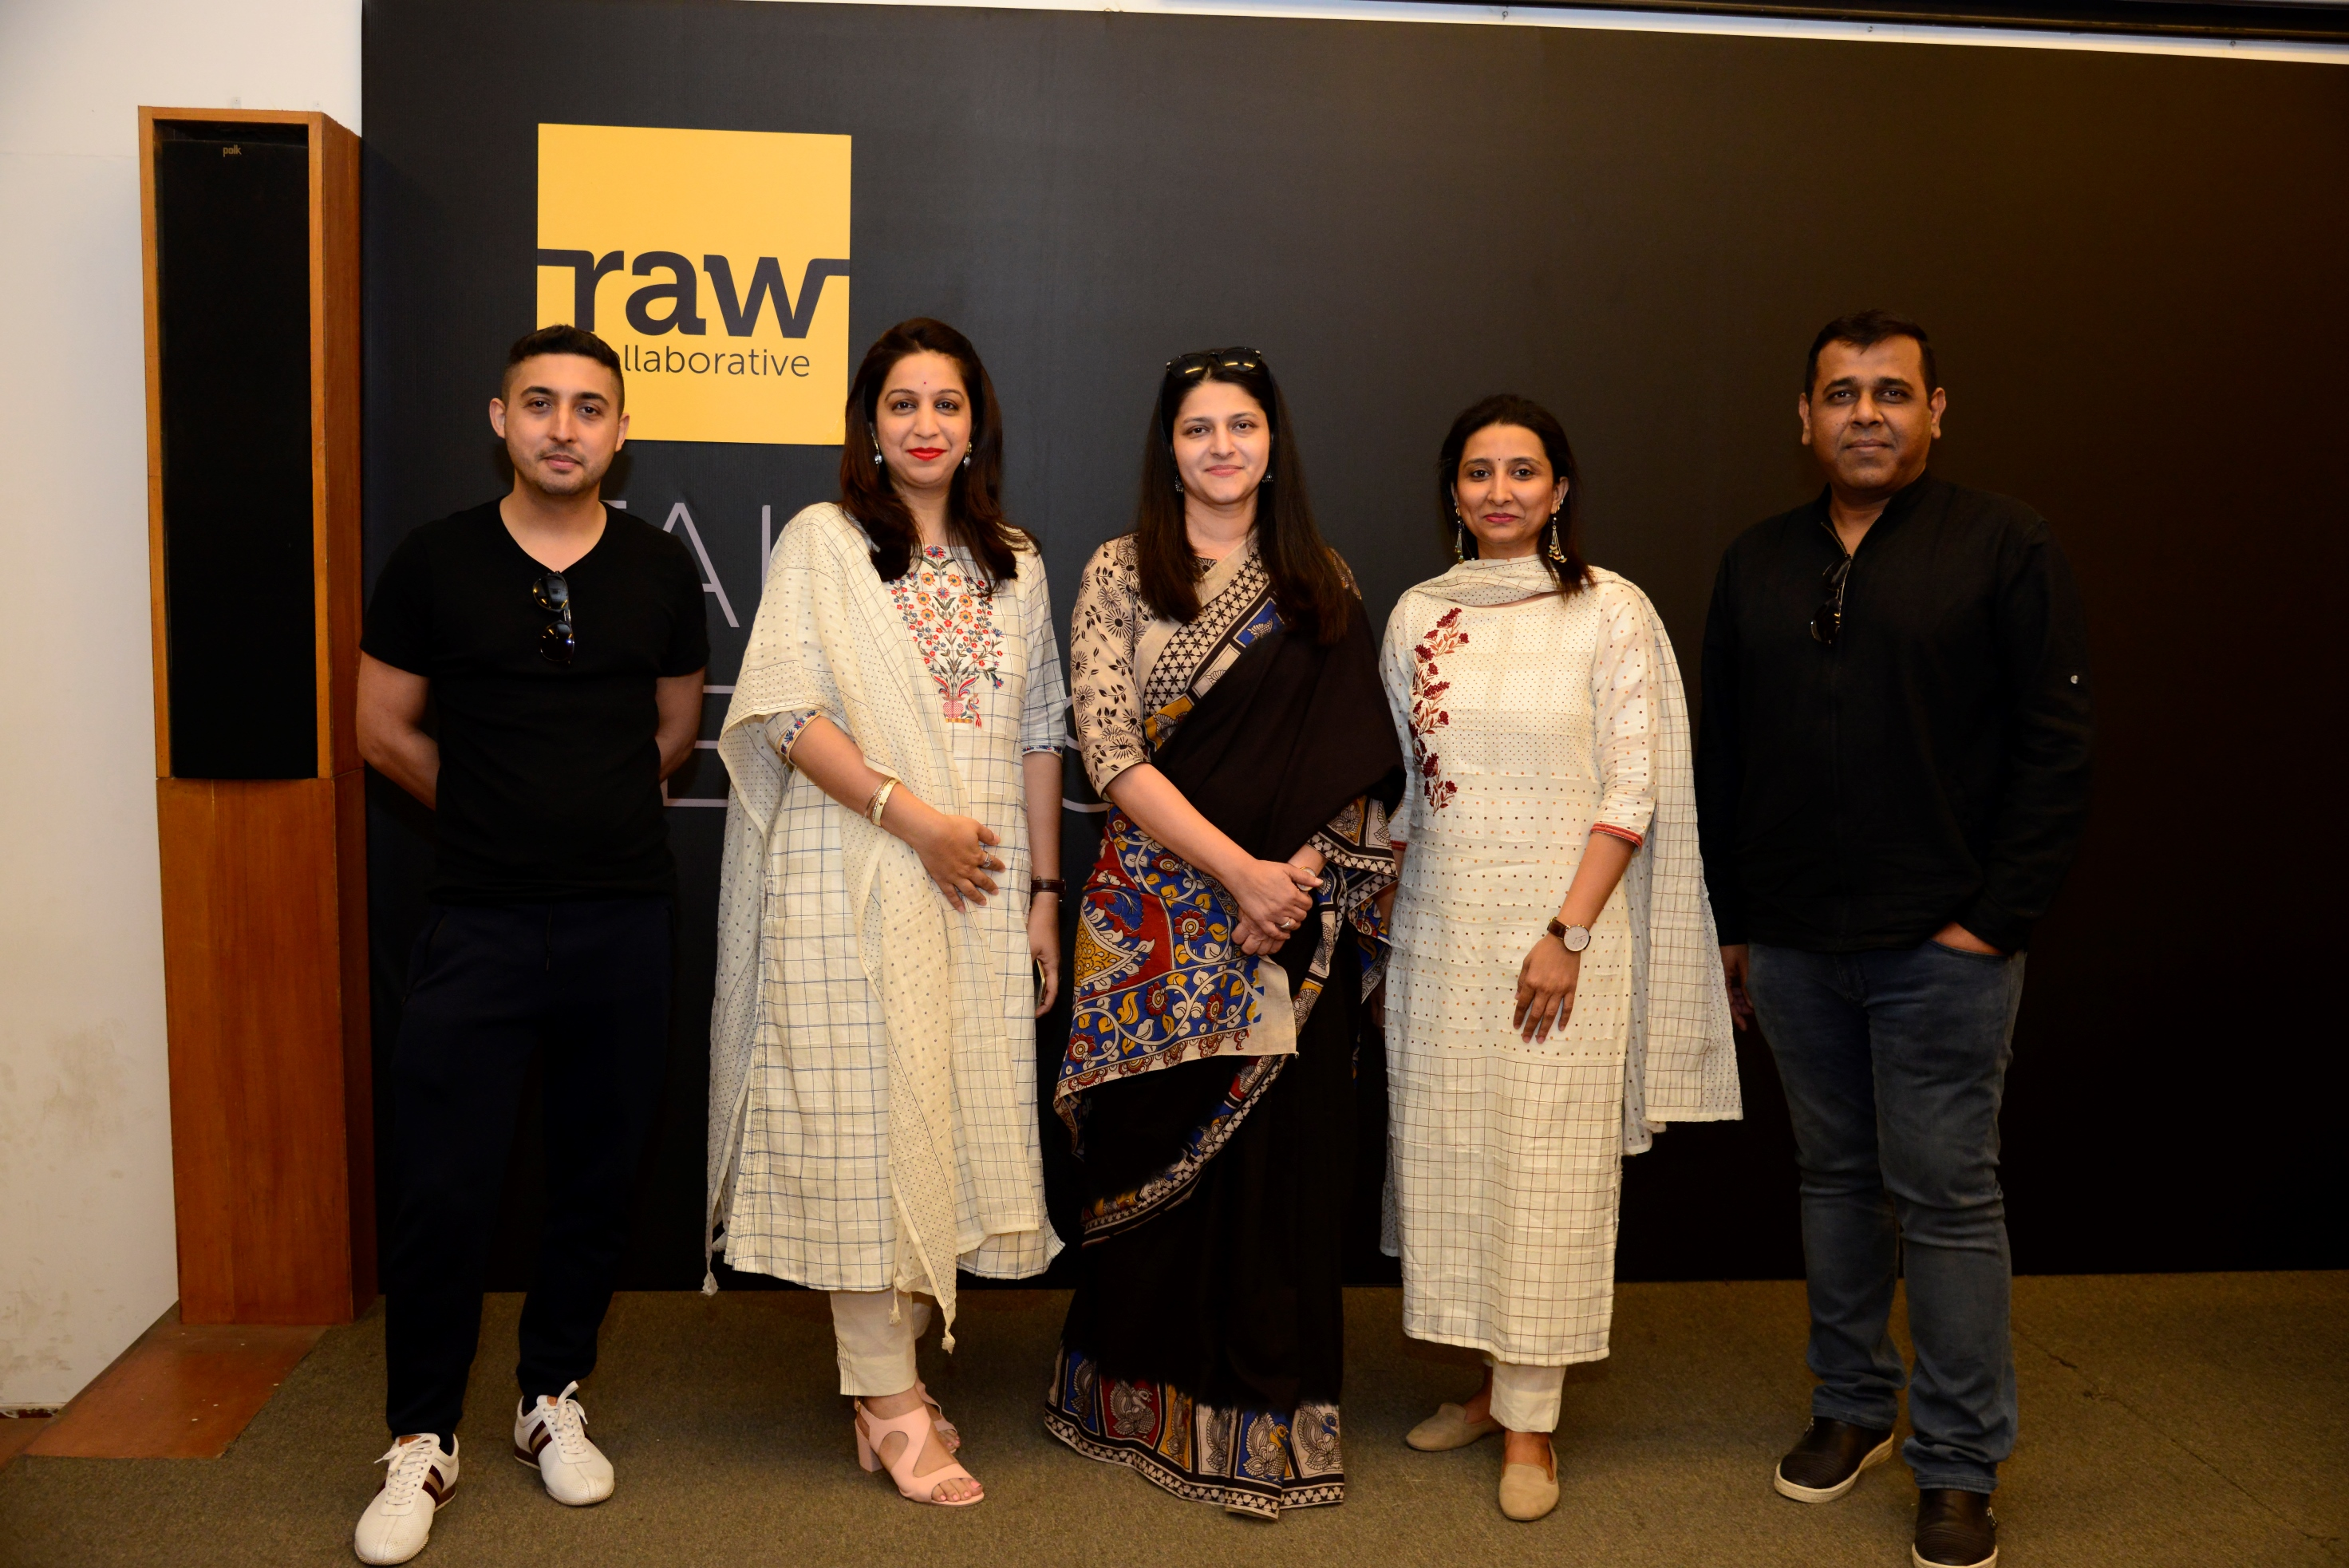 Raw Collaborative - Where Design meets Indian Craftmanship